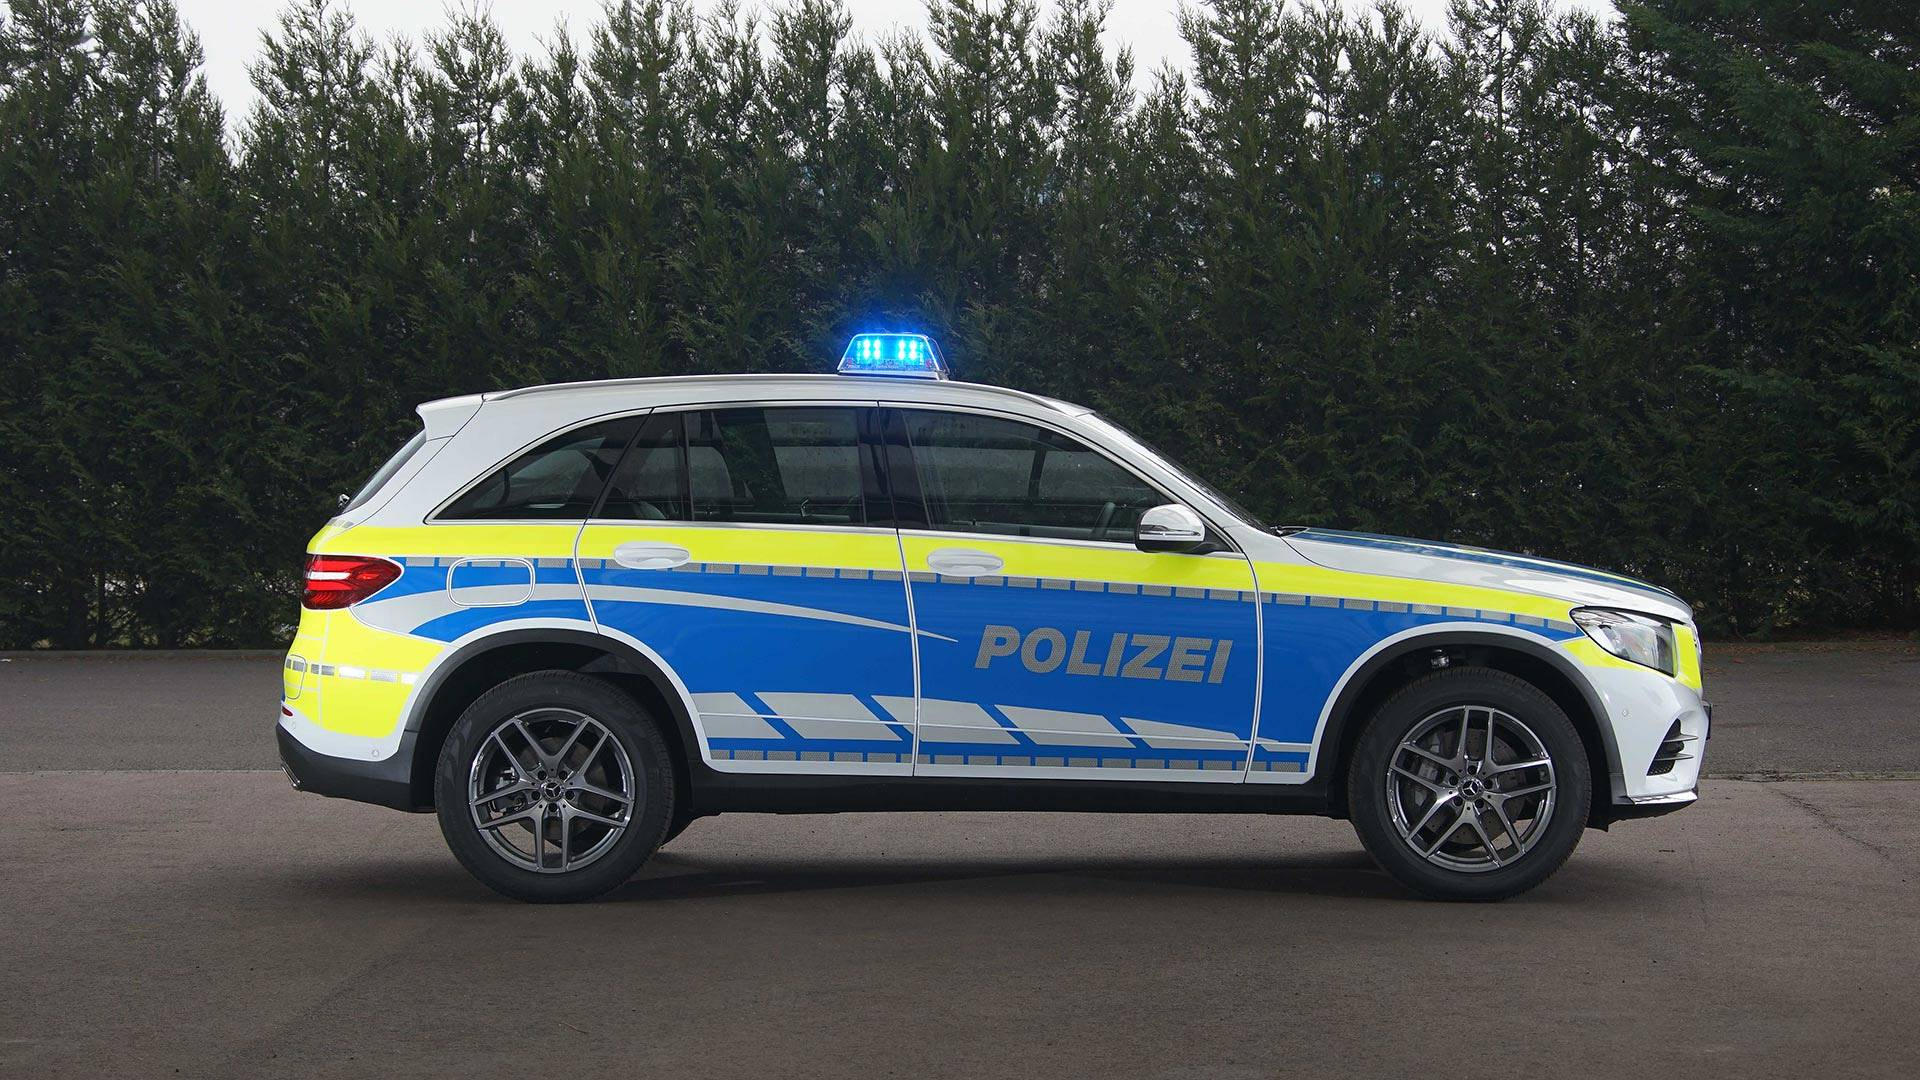 2018-mercedes-benz-police-vehicles.jpg